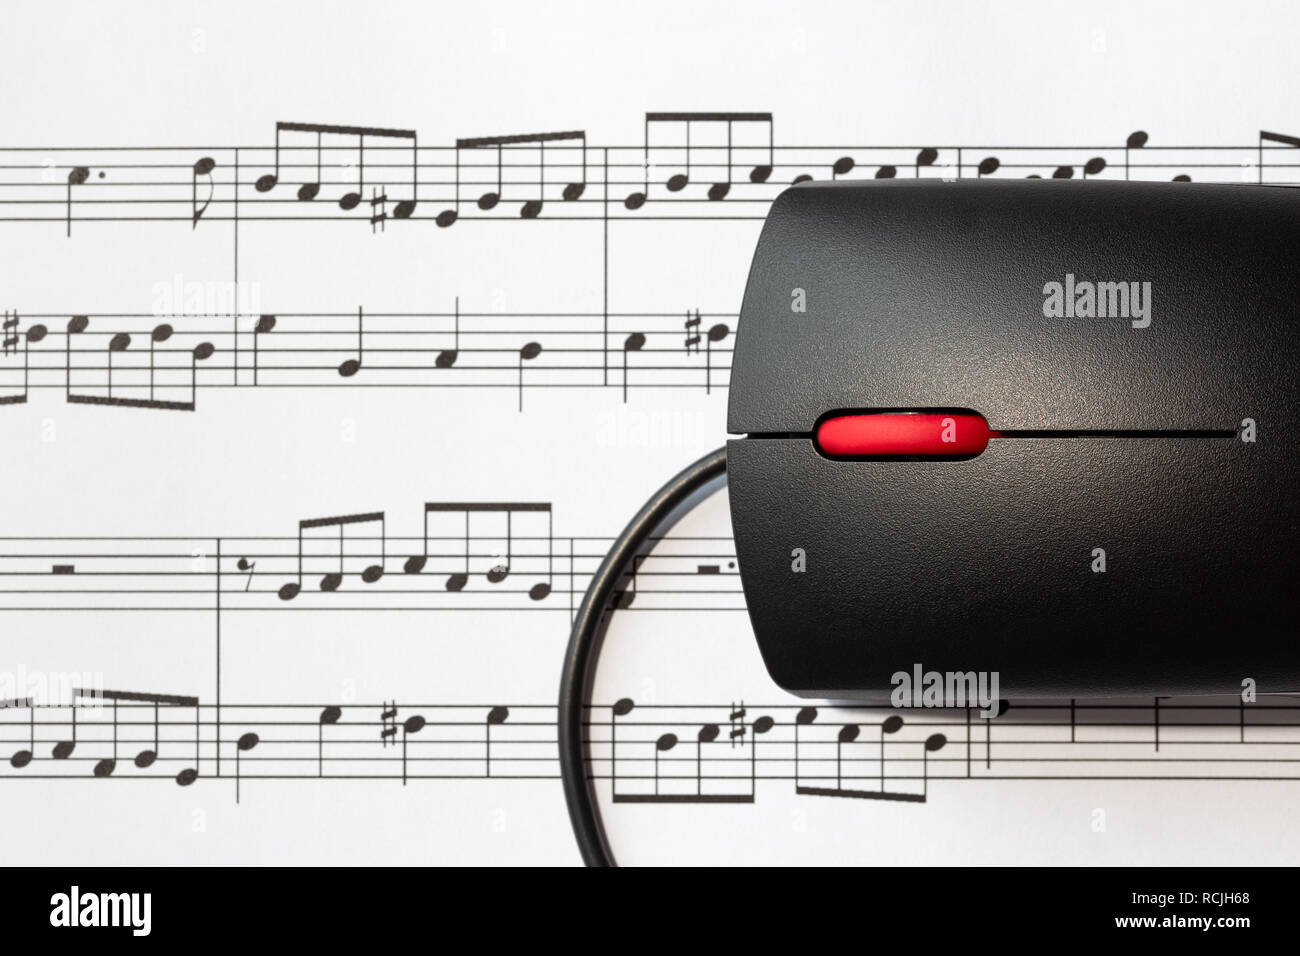 Computer mouse on a sheet with musical notes, close-up with